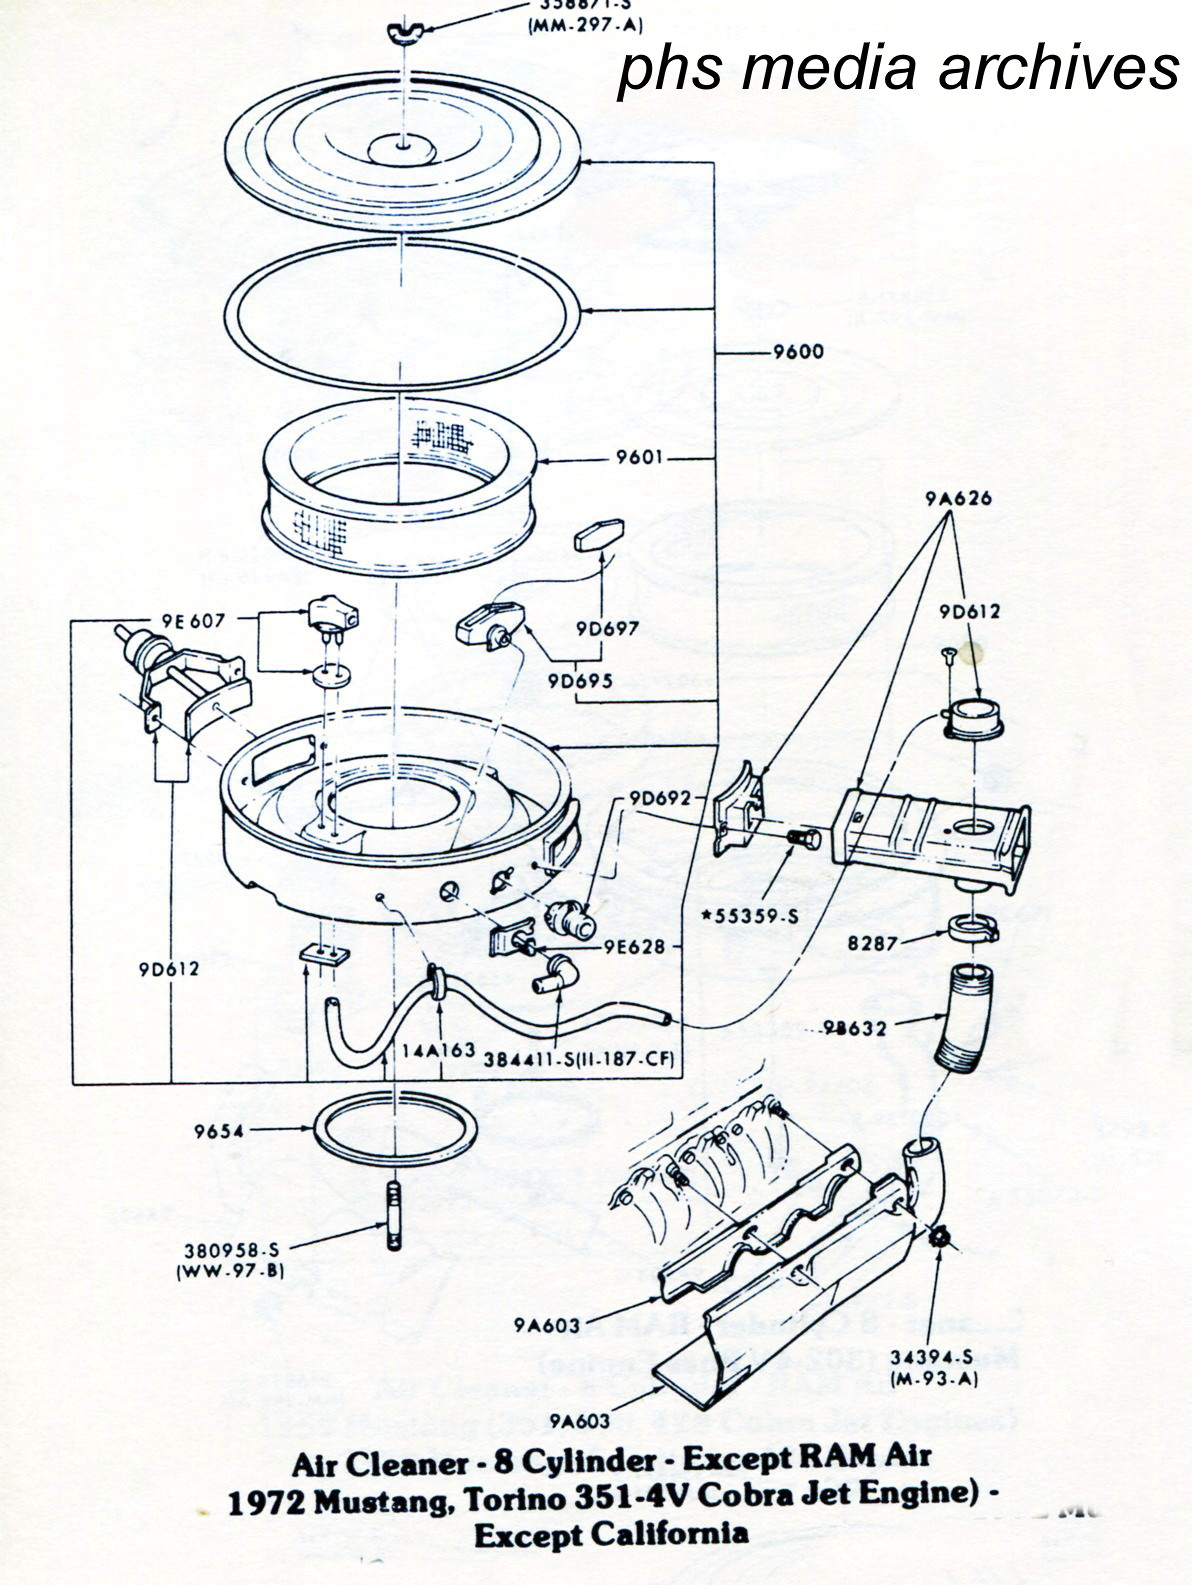 tech series ford mustang air cleaner id guide 1971 1973 1973 Mustang Fastback Mach 1 Interior the 1972 351 4v air cleaner assembly for mustang and torino including the cobrajet model but without ram air note that this does not include california